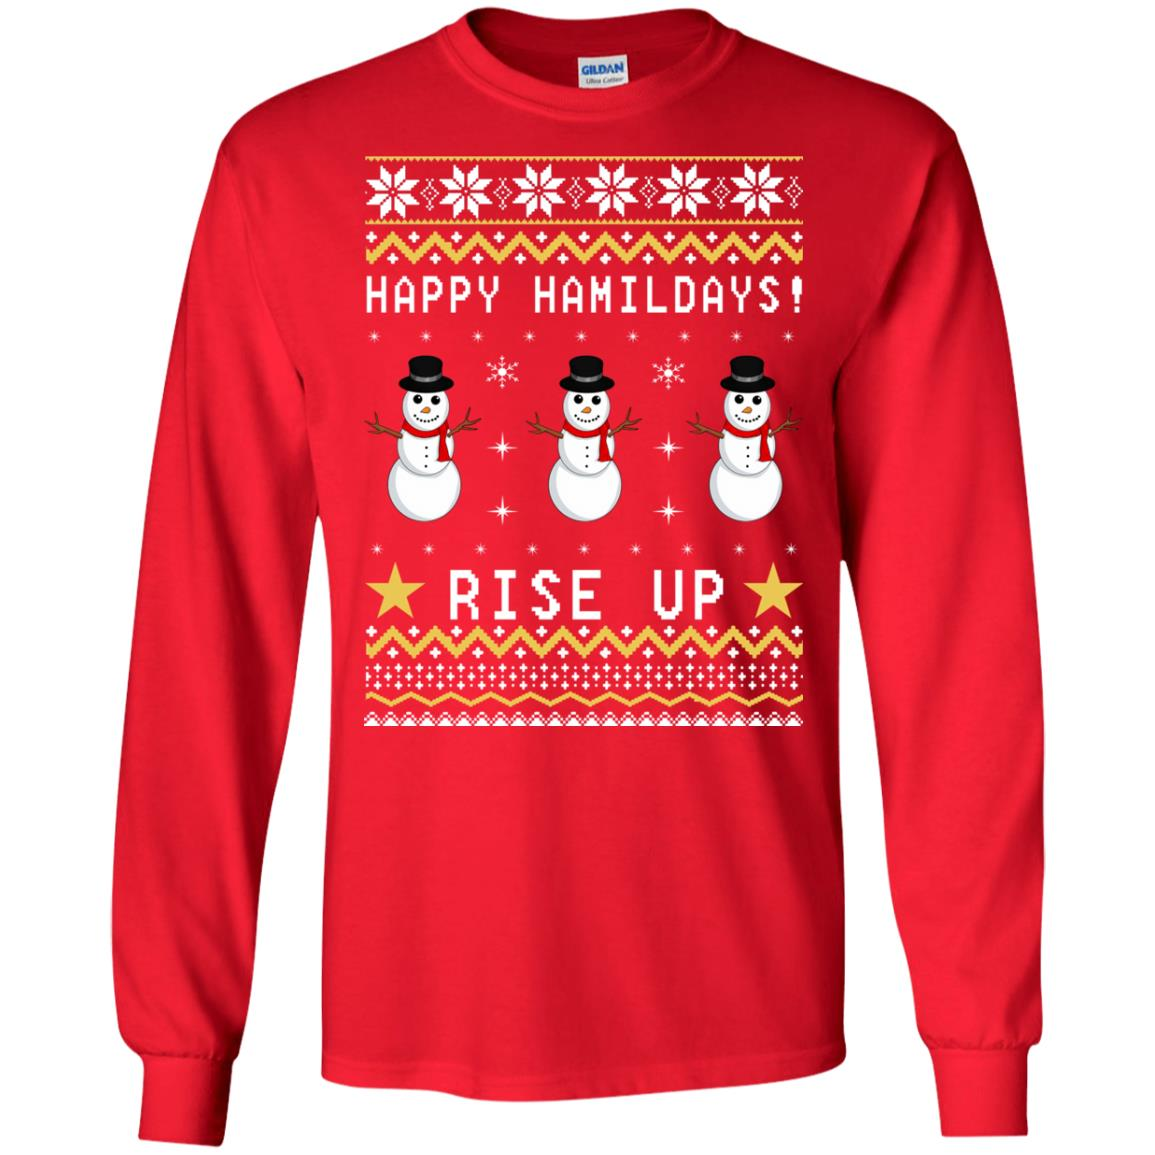 Happy Hamildays Rise Up Christmas Ugly Sweater, Shirt - image 3392